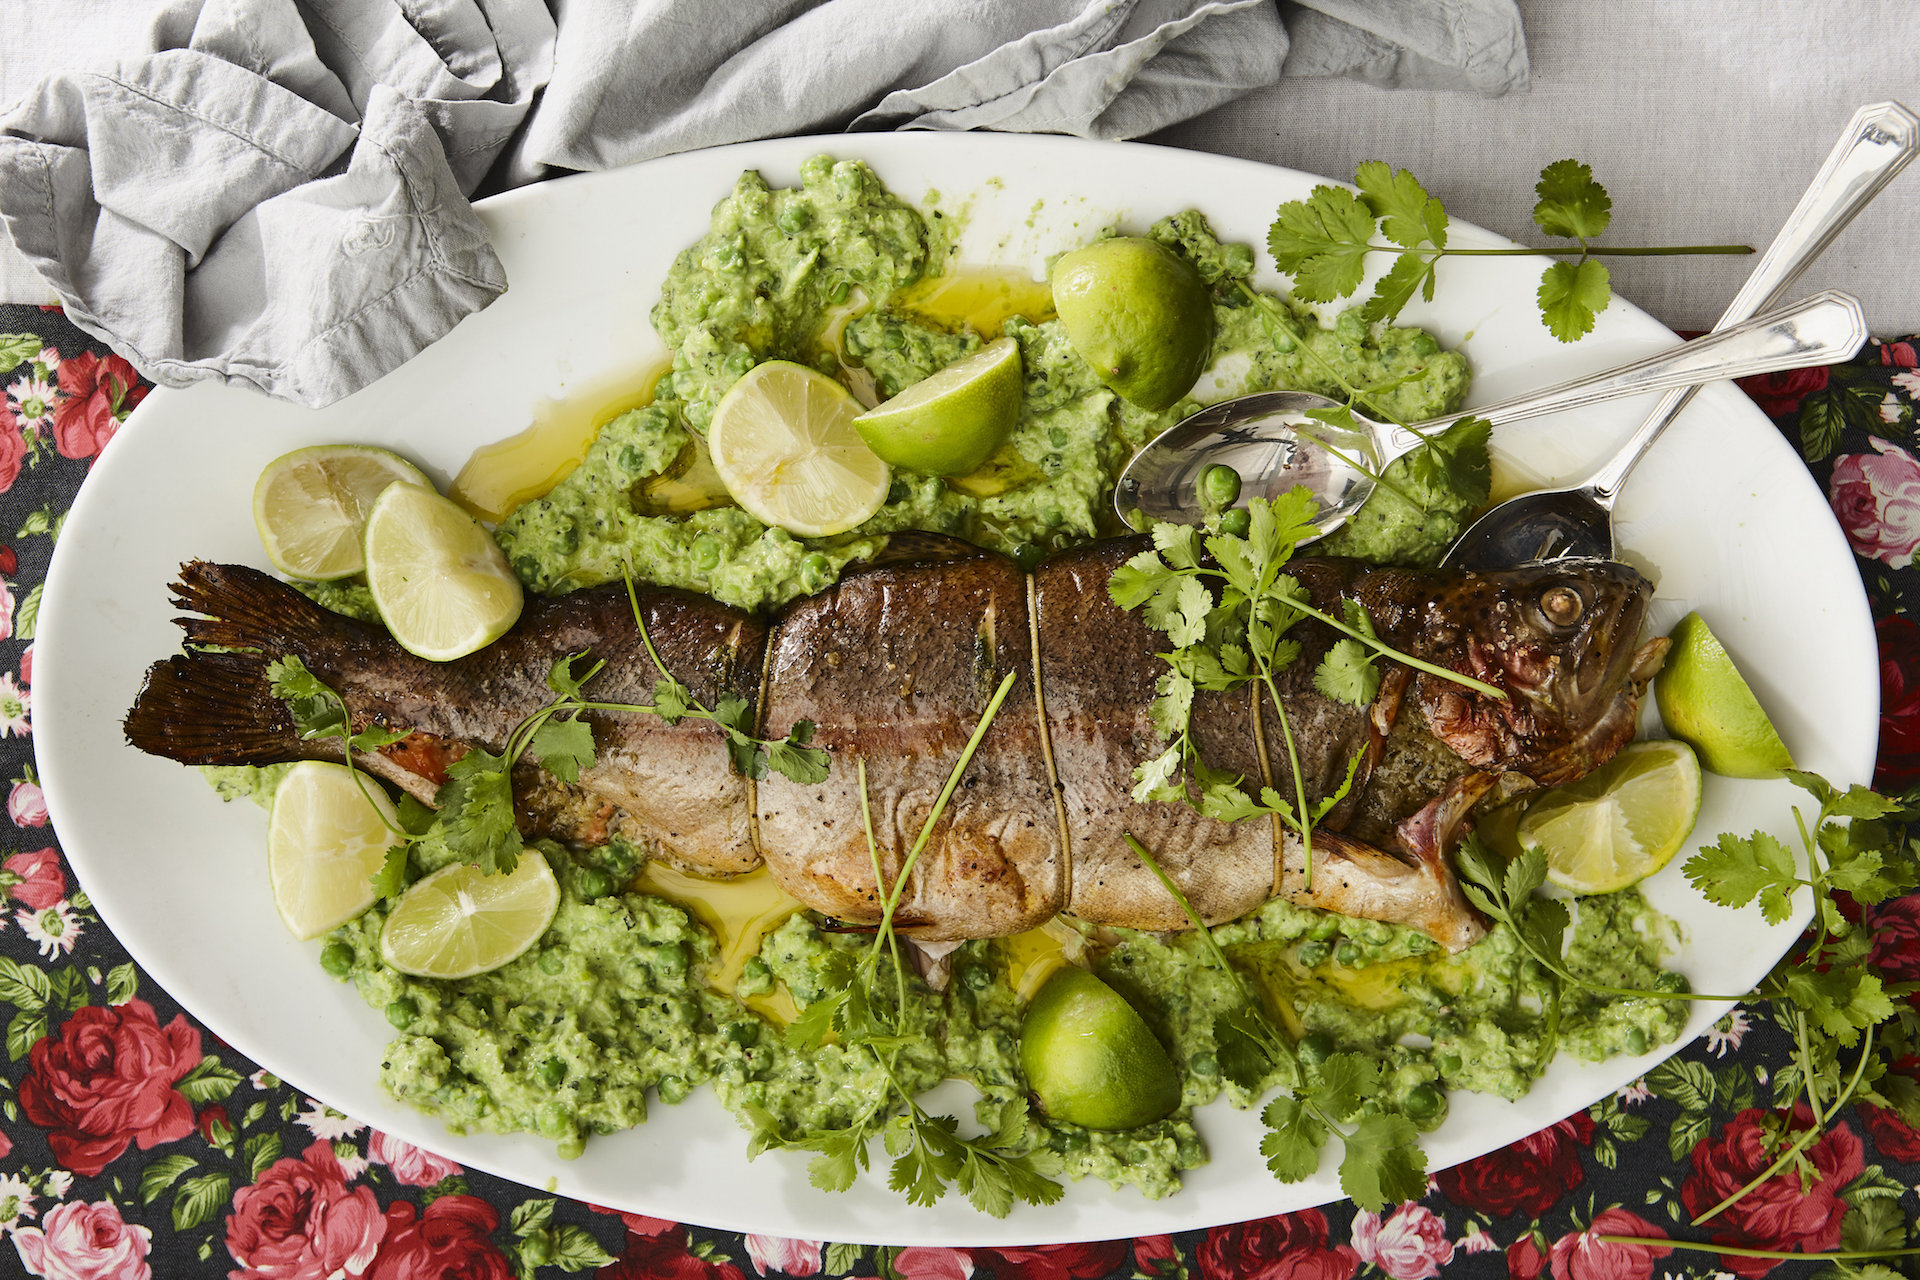 Festive Menu 2: Whole Trout & Pea Puree